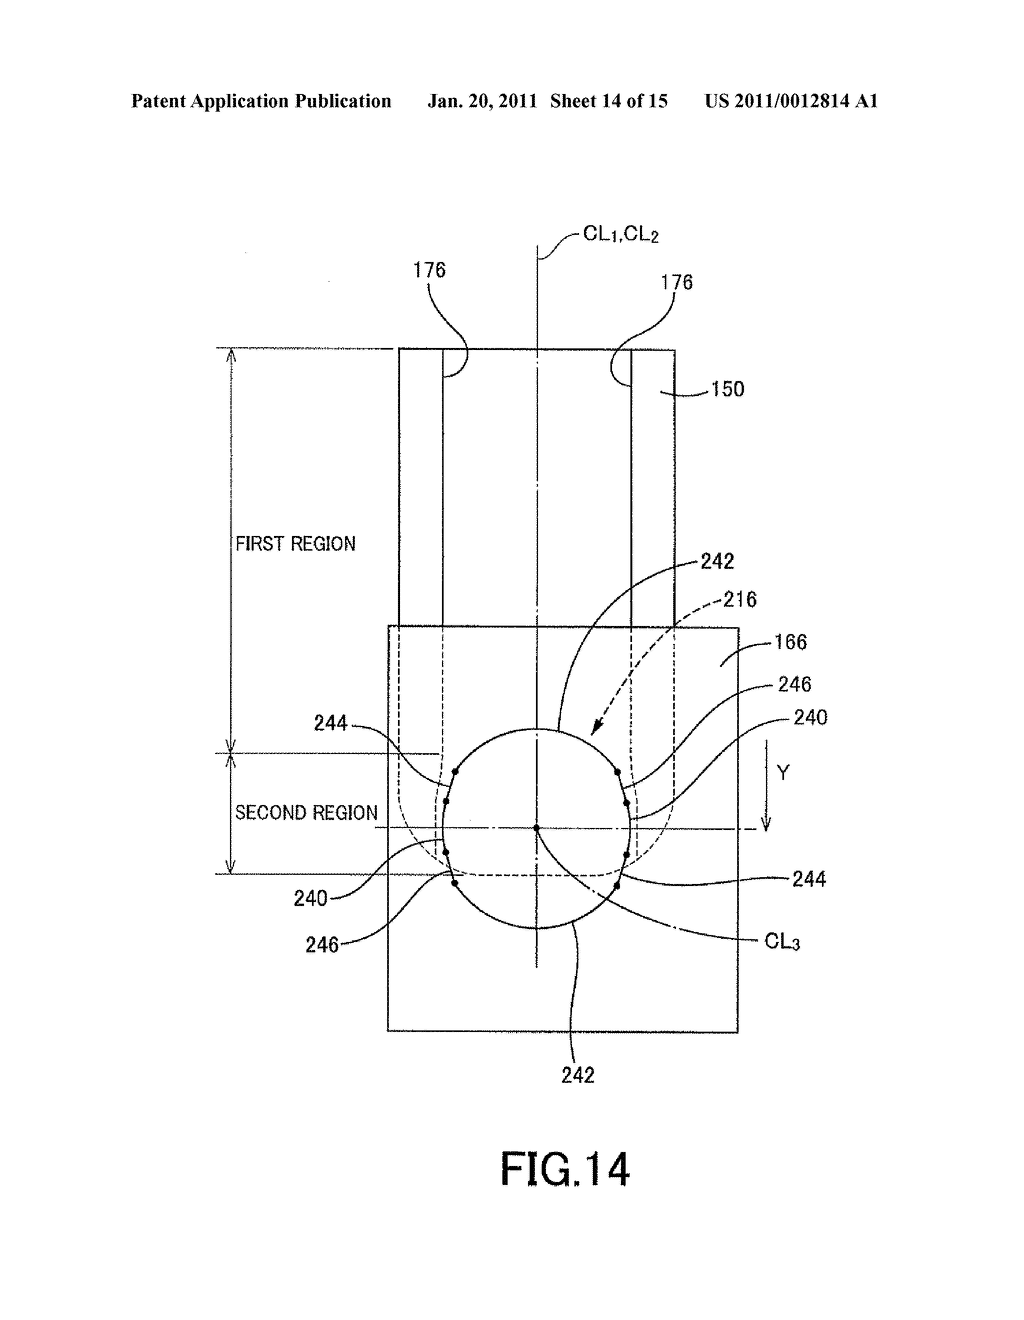 Adjustable Attachment for Attaching Head-Mounted Display to Eyeglasses-Type Frame - diagram, schematic, and image 15